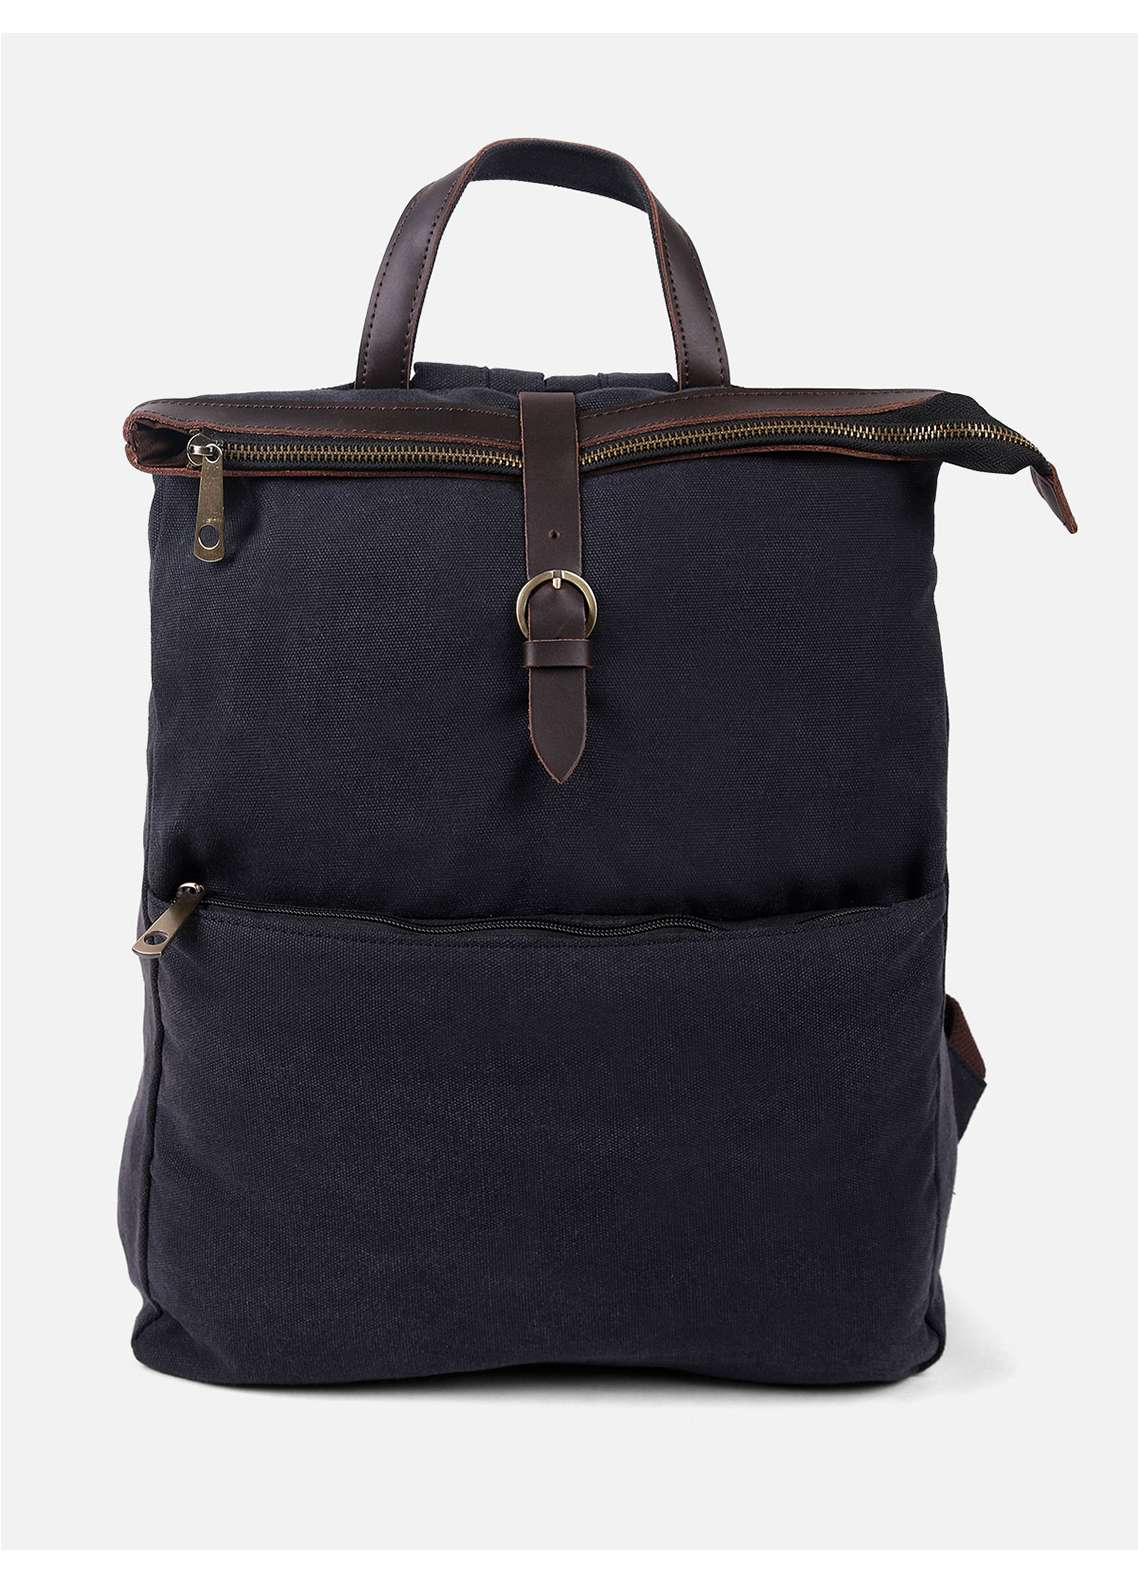 Furor Mix Backpack Bags for Unisex - Charcoal with Plain Texture